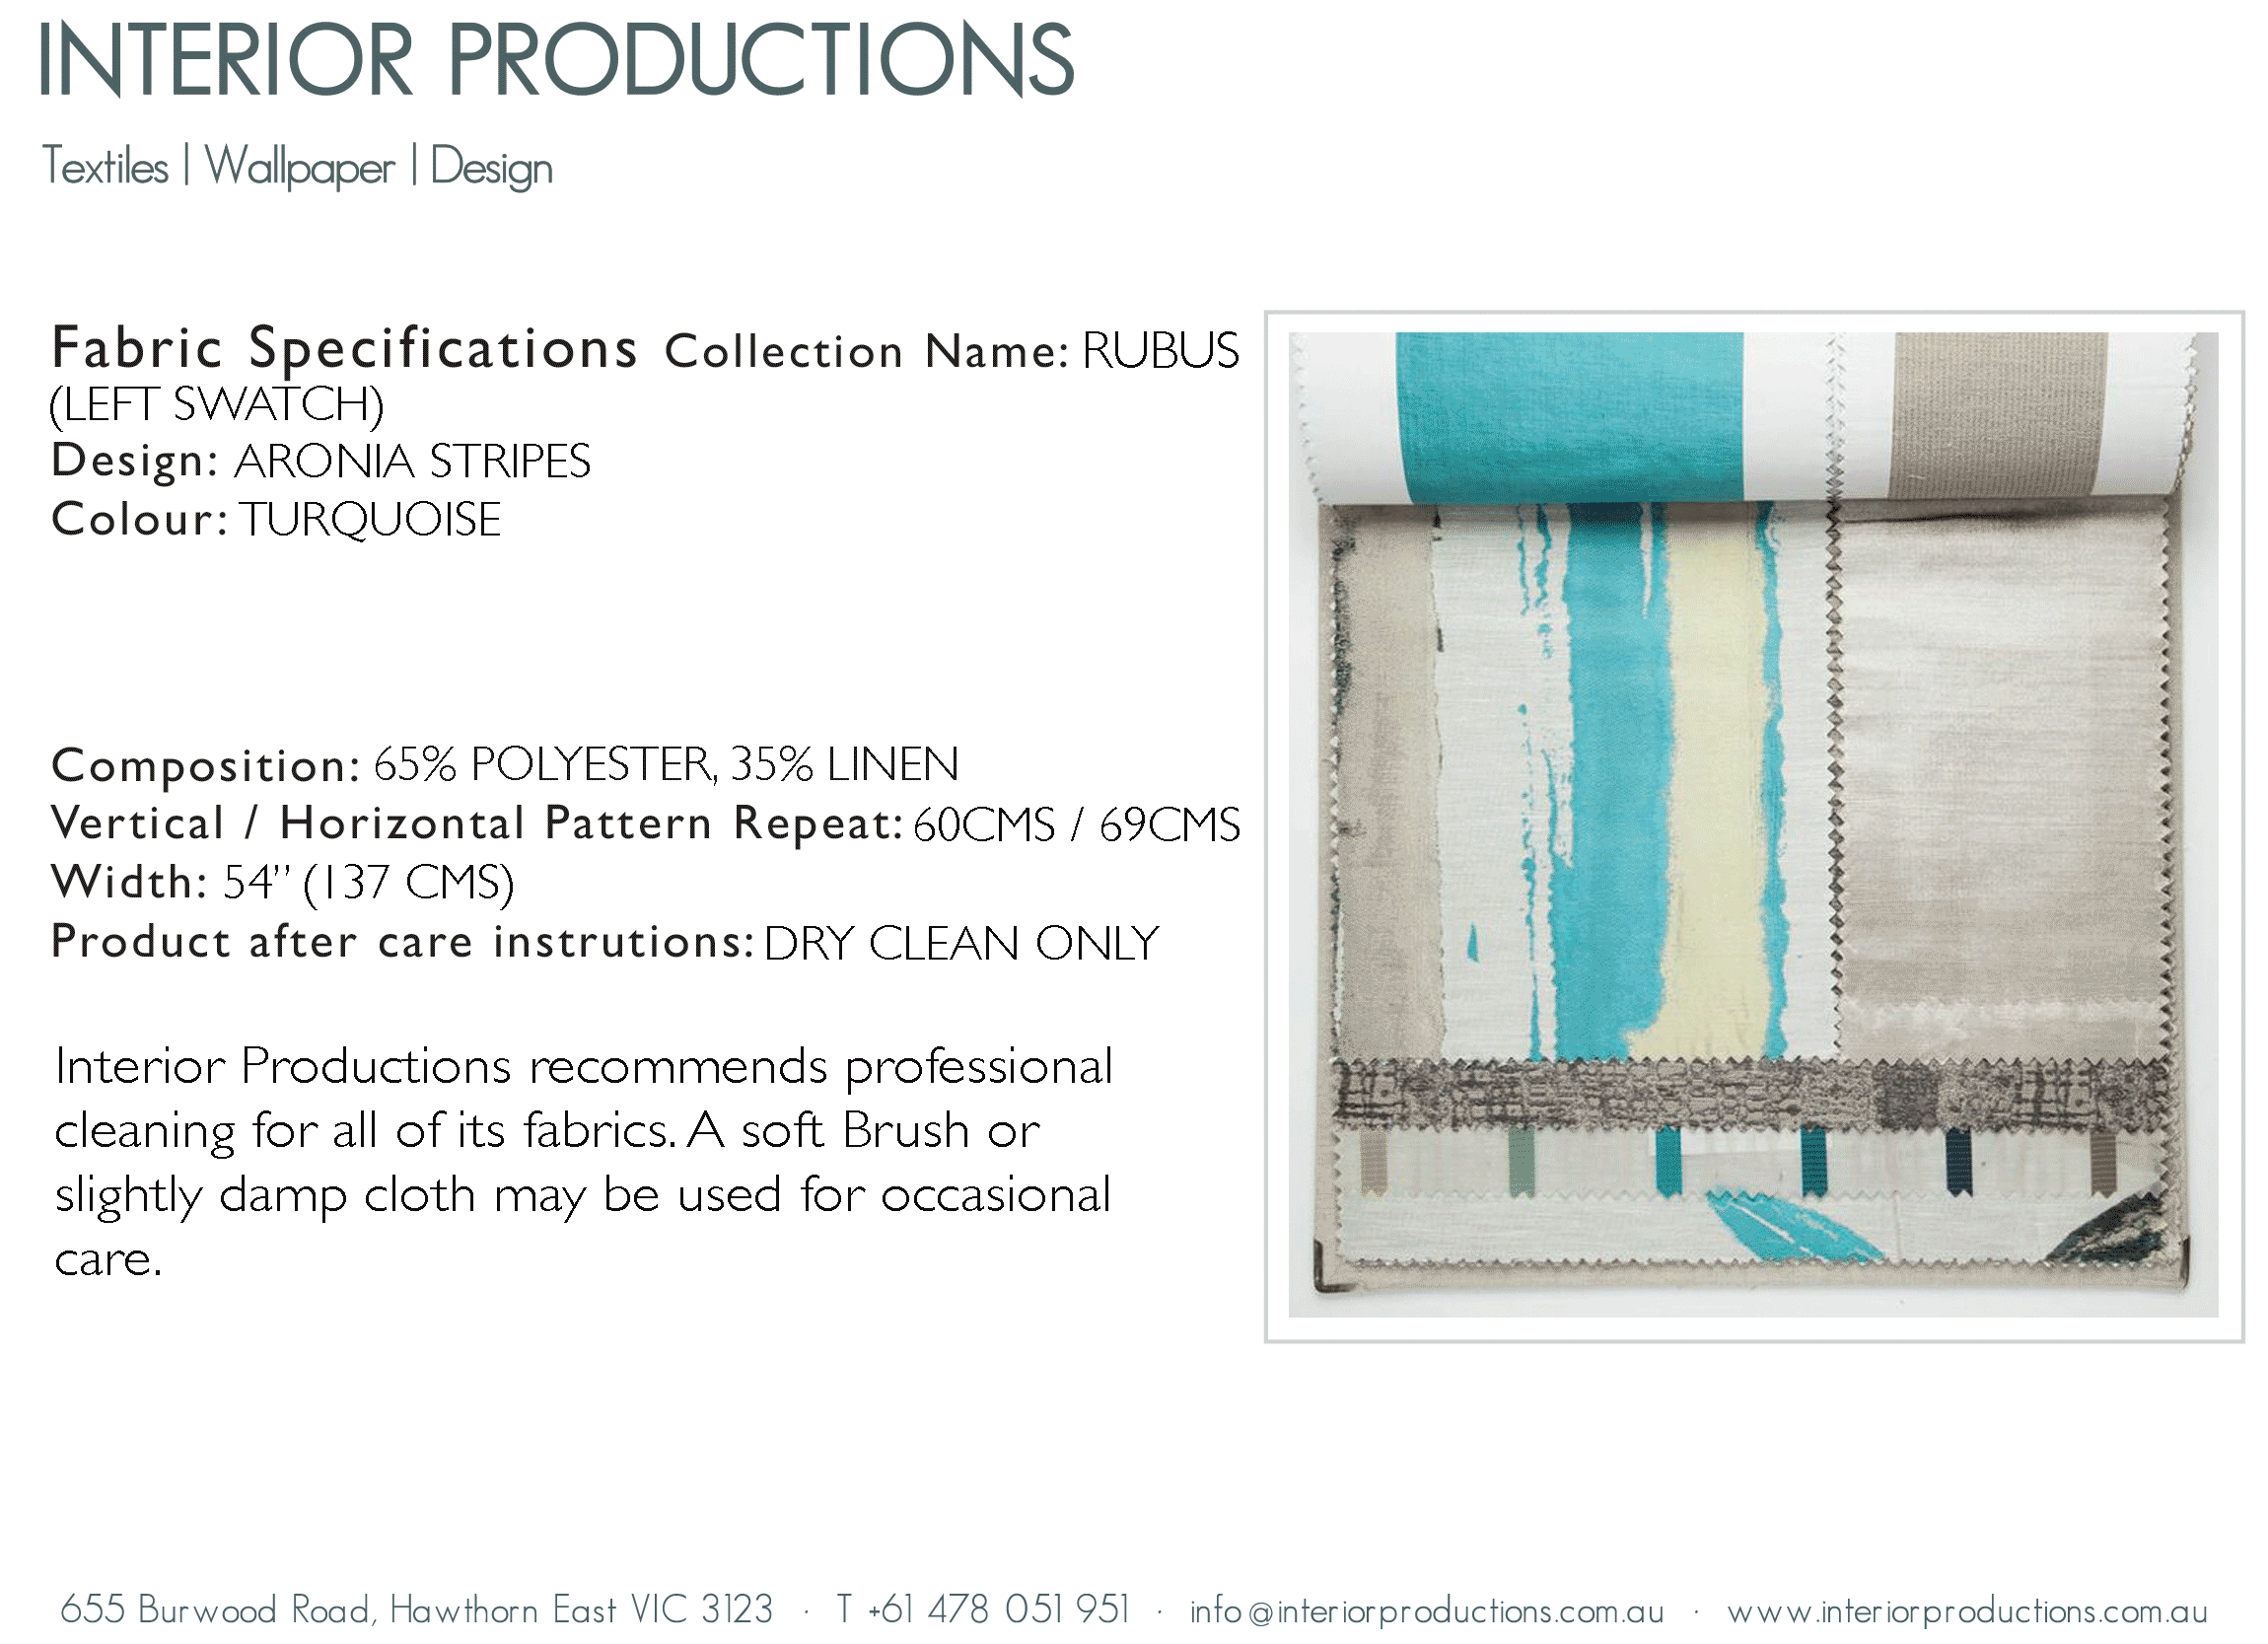 interior_productions_ARONIA-STRIPES---TURQUOISE